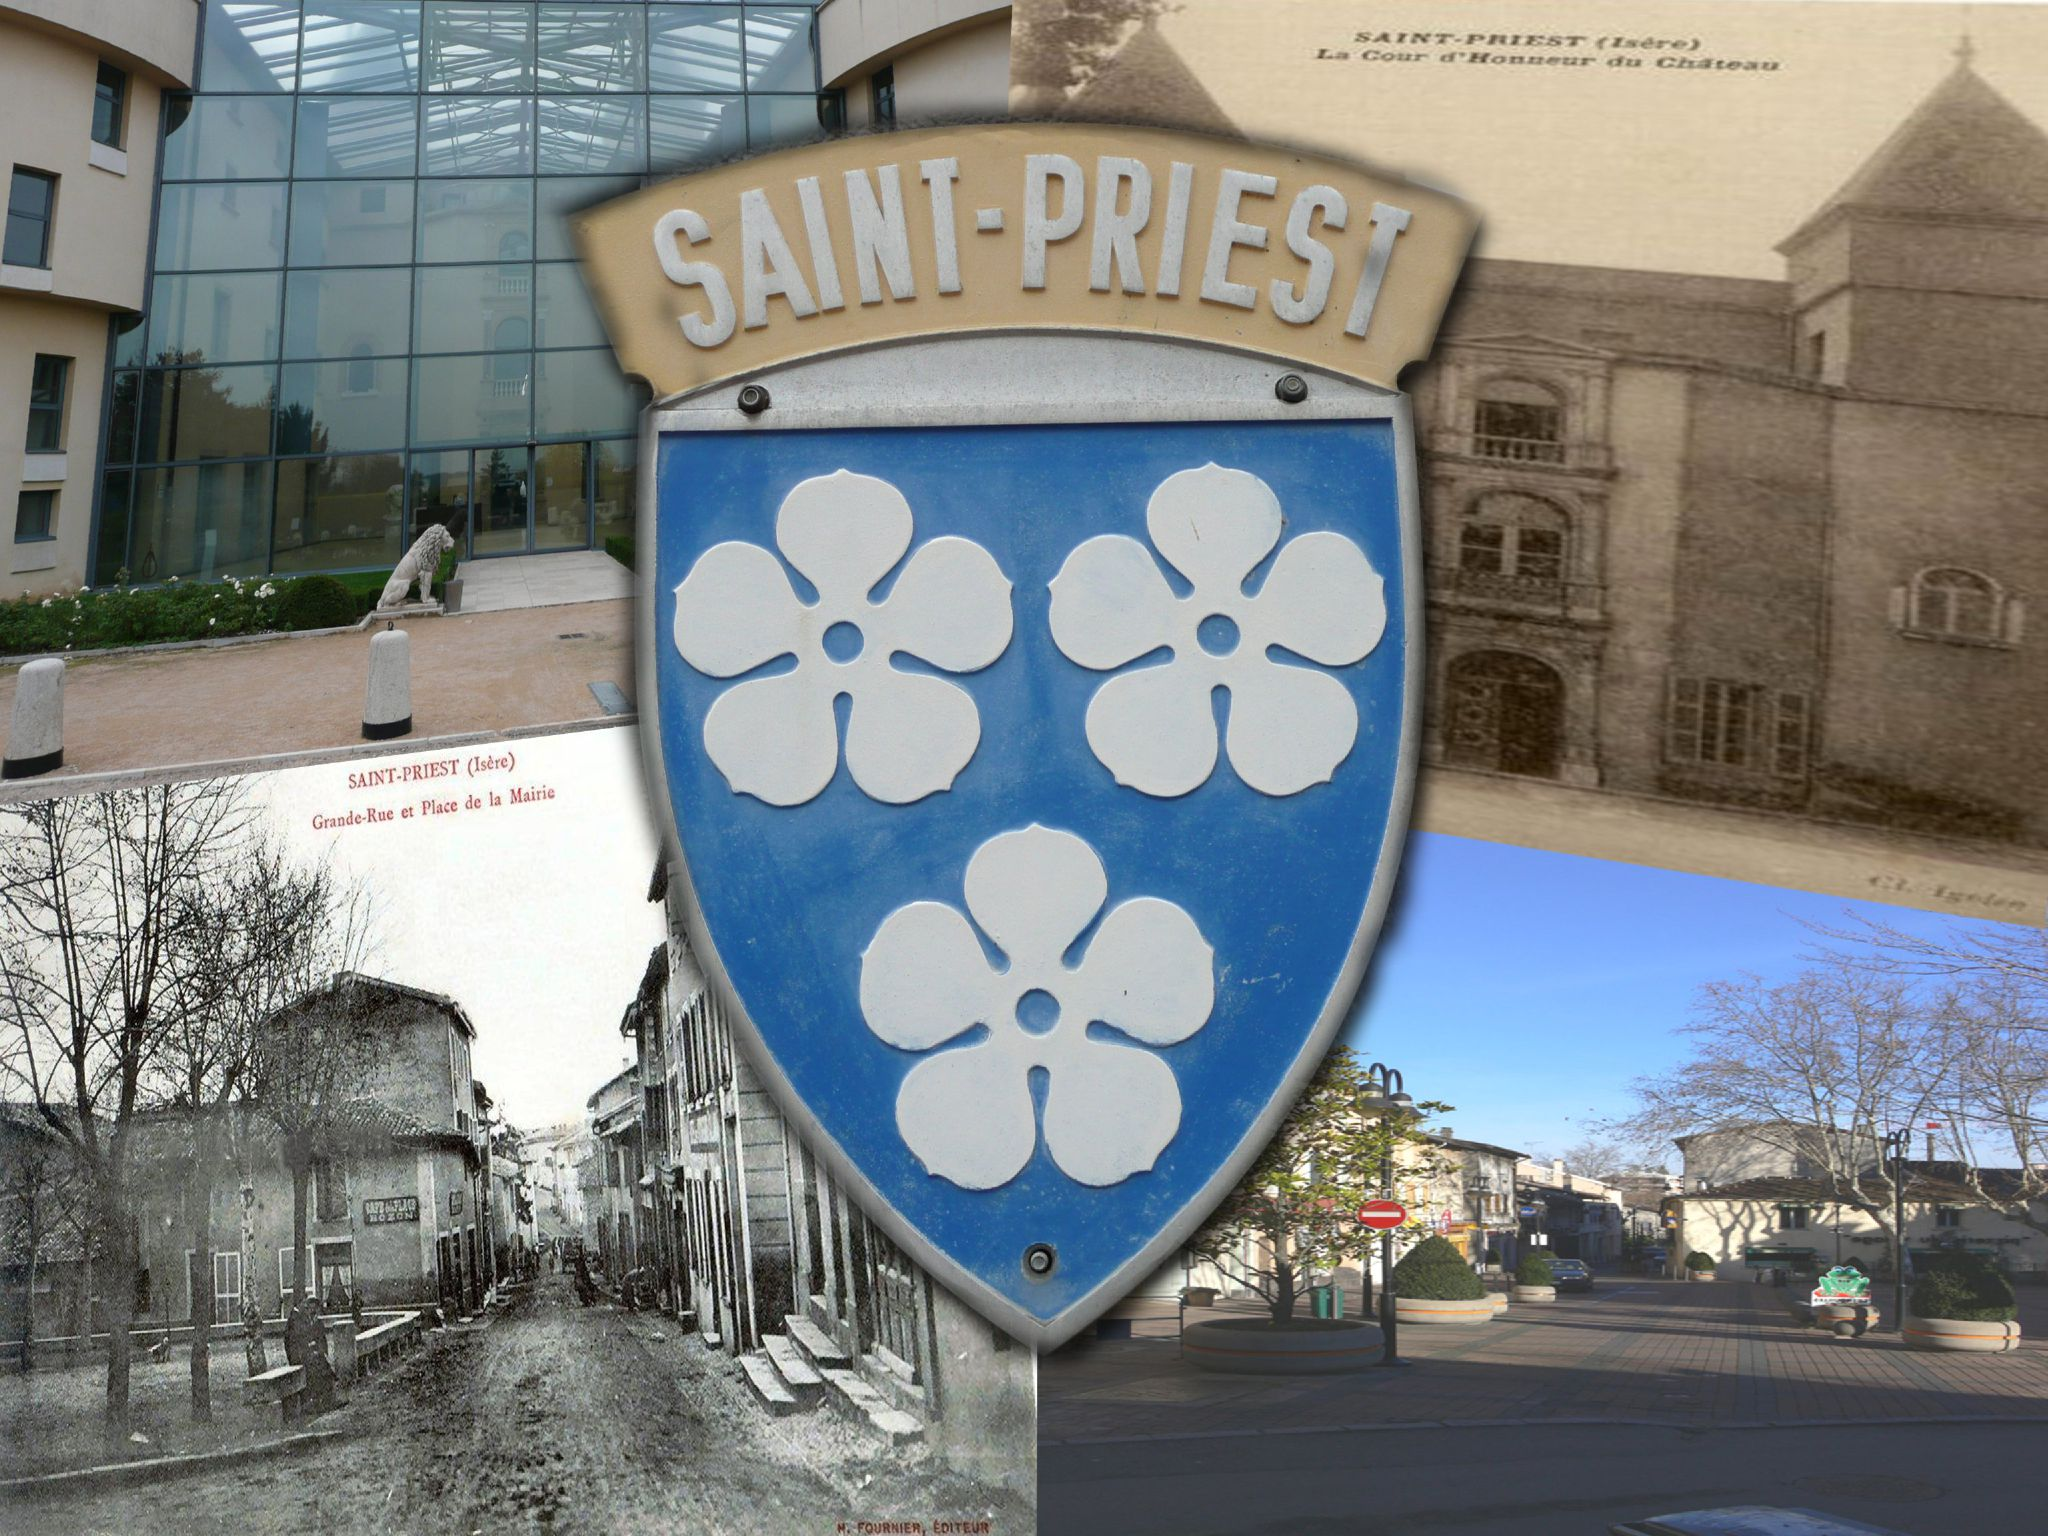 Montages photos ville de saint priest d 39 hier et d 39 aujourd 39 hui creationsy - Piscine saint priest ...